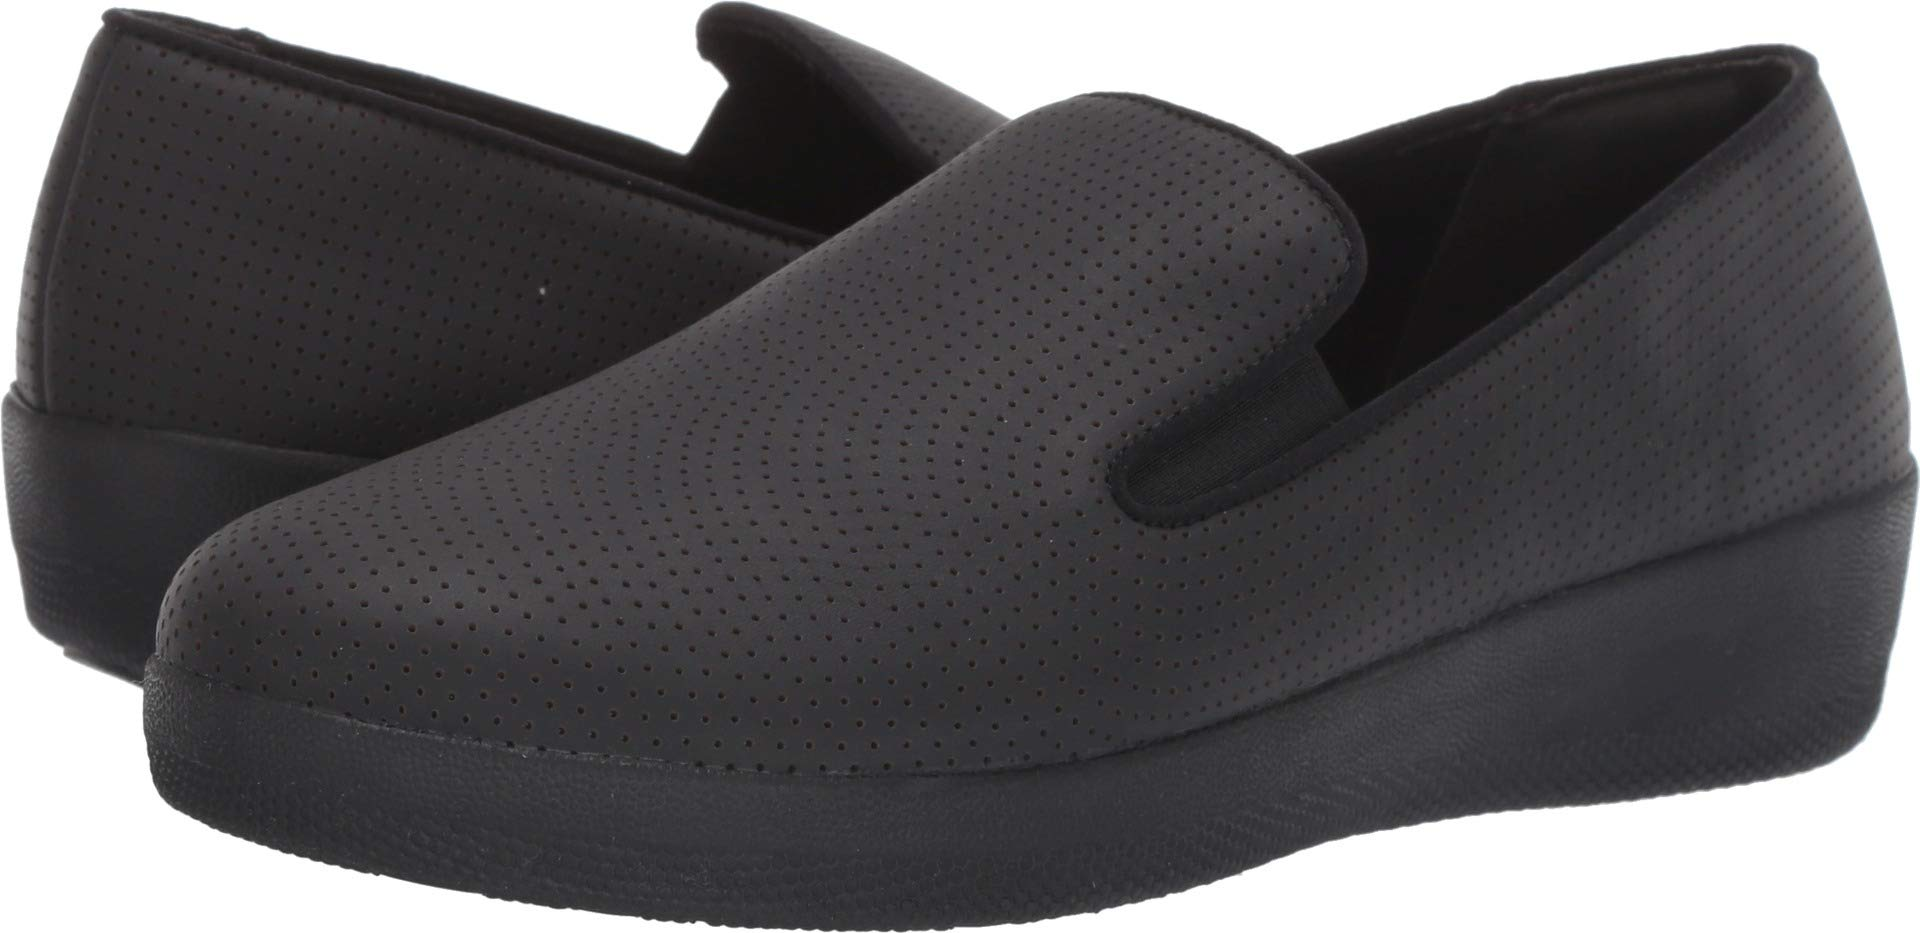 FITFLOP Women's Superskate Perforated Skate Shoe, Black, 7 M US by FITFLOP